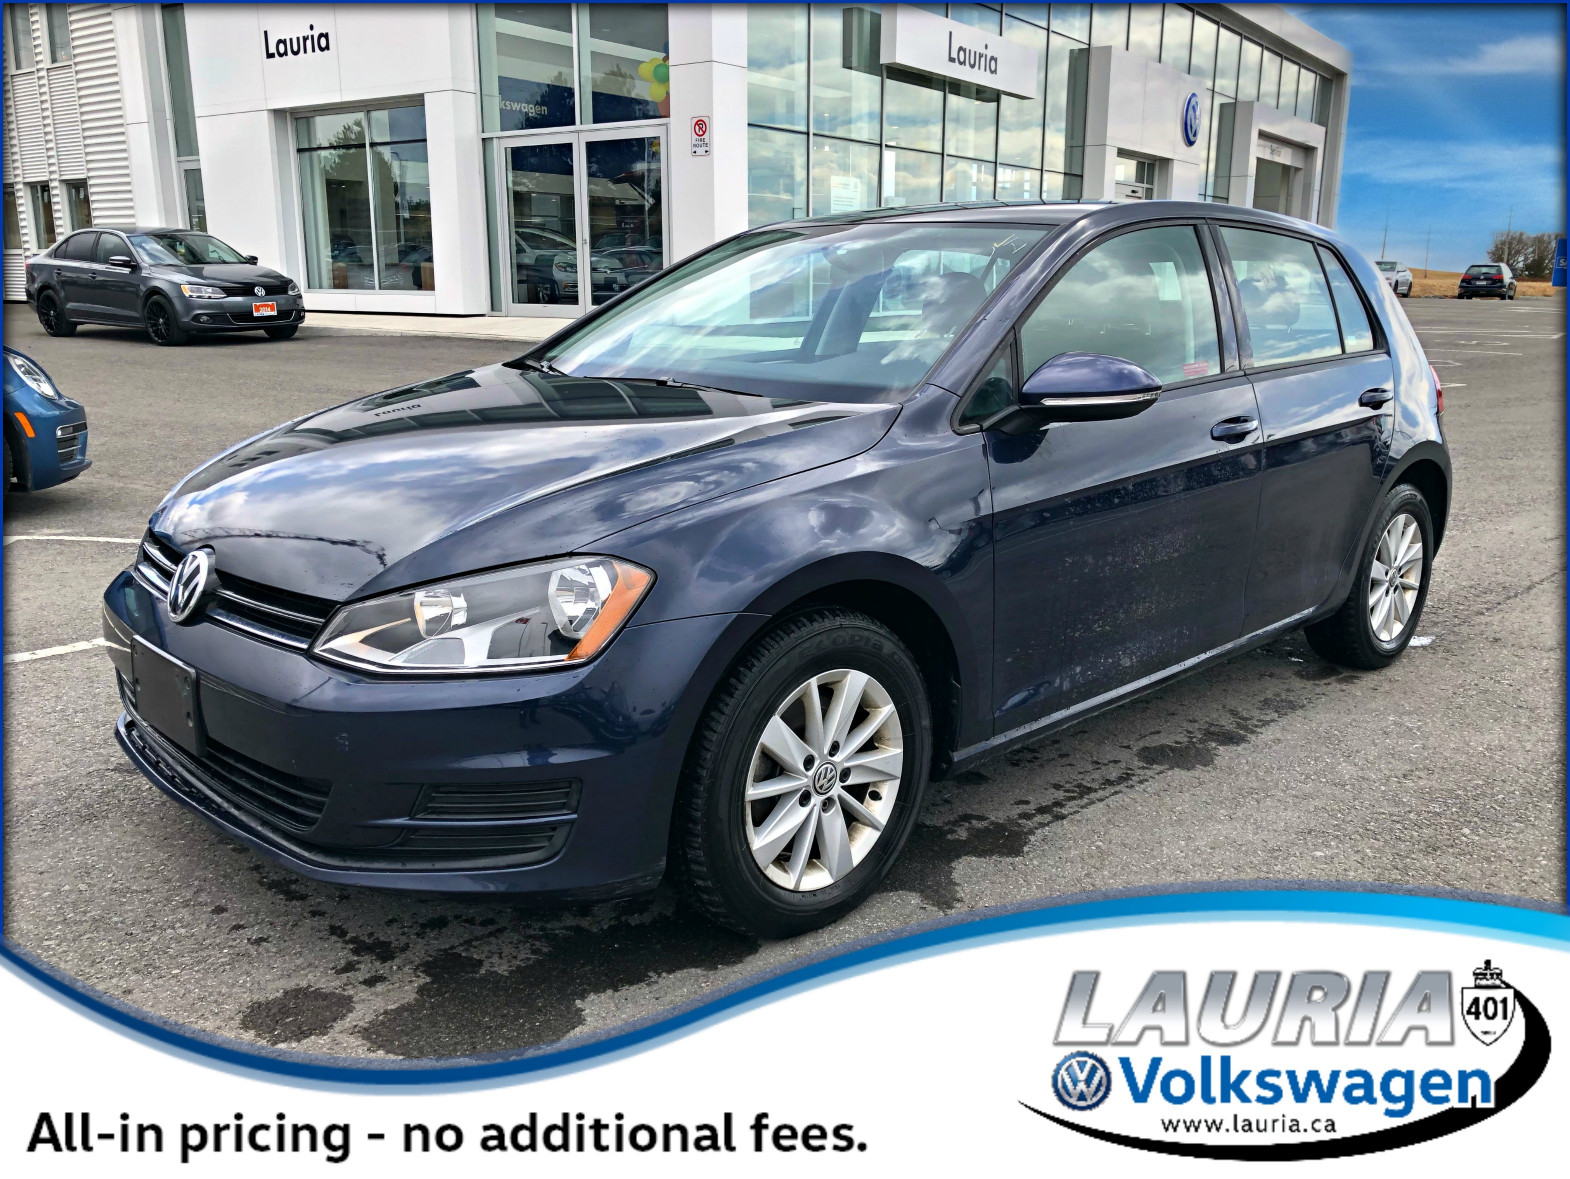 Certified Pre-Owned 2017 Volkswagen Golf 1.8 TSI Trendline Auto - Backup camera / Bluetooth